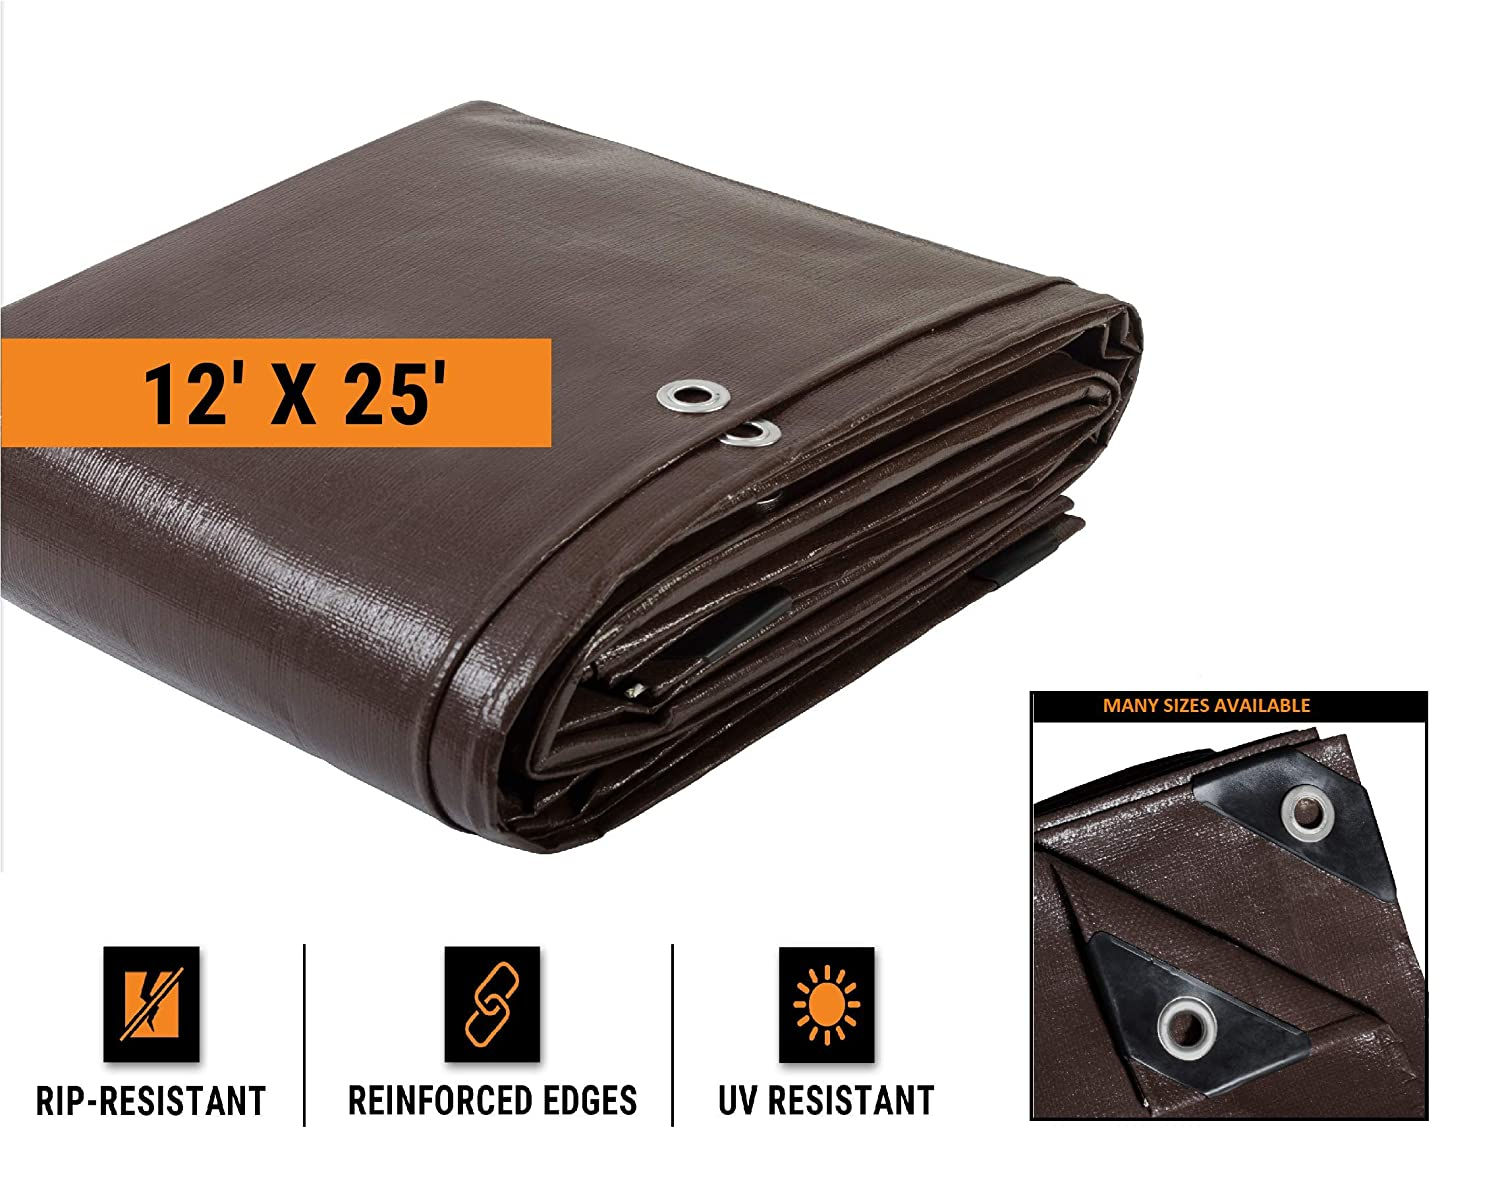 12' x 25' Super Heavy Duty 16 Mil Brown Poly Tarp Cover - Thick Waterproof, UV Resistant, Rot, Rip and Tear Proof Tarpaulin with Grommets and Reinforced Edges - by Xpose Safety